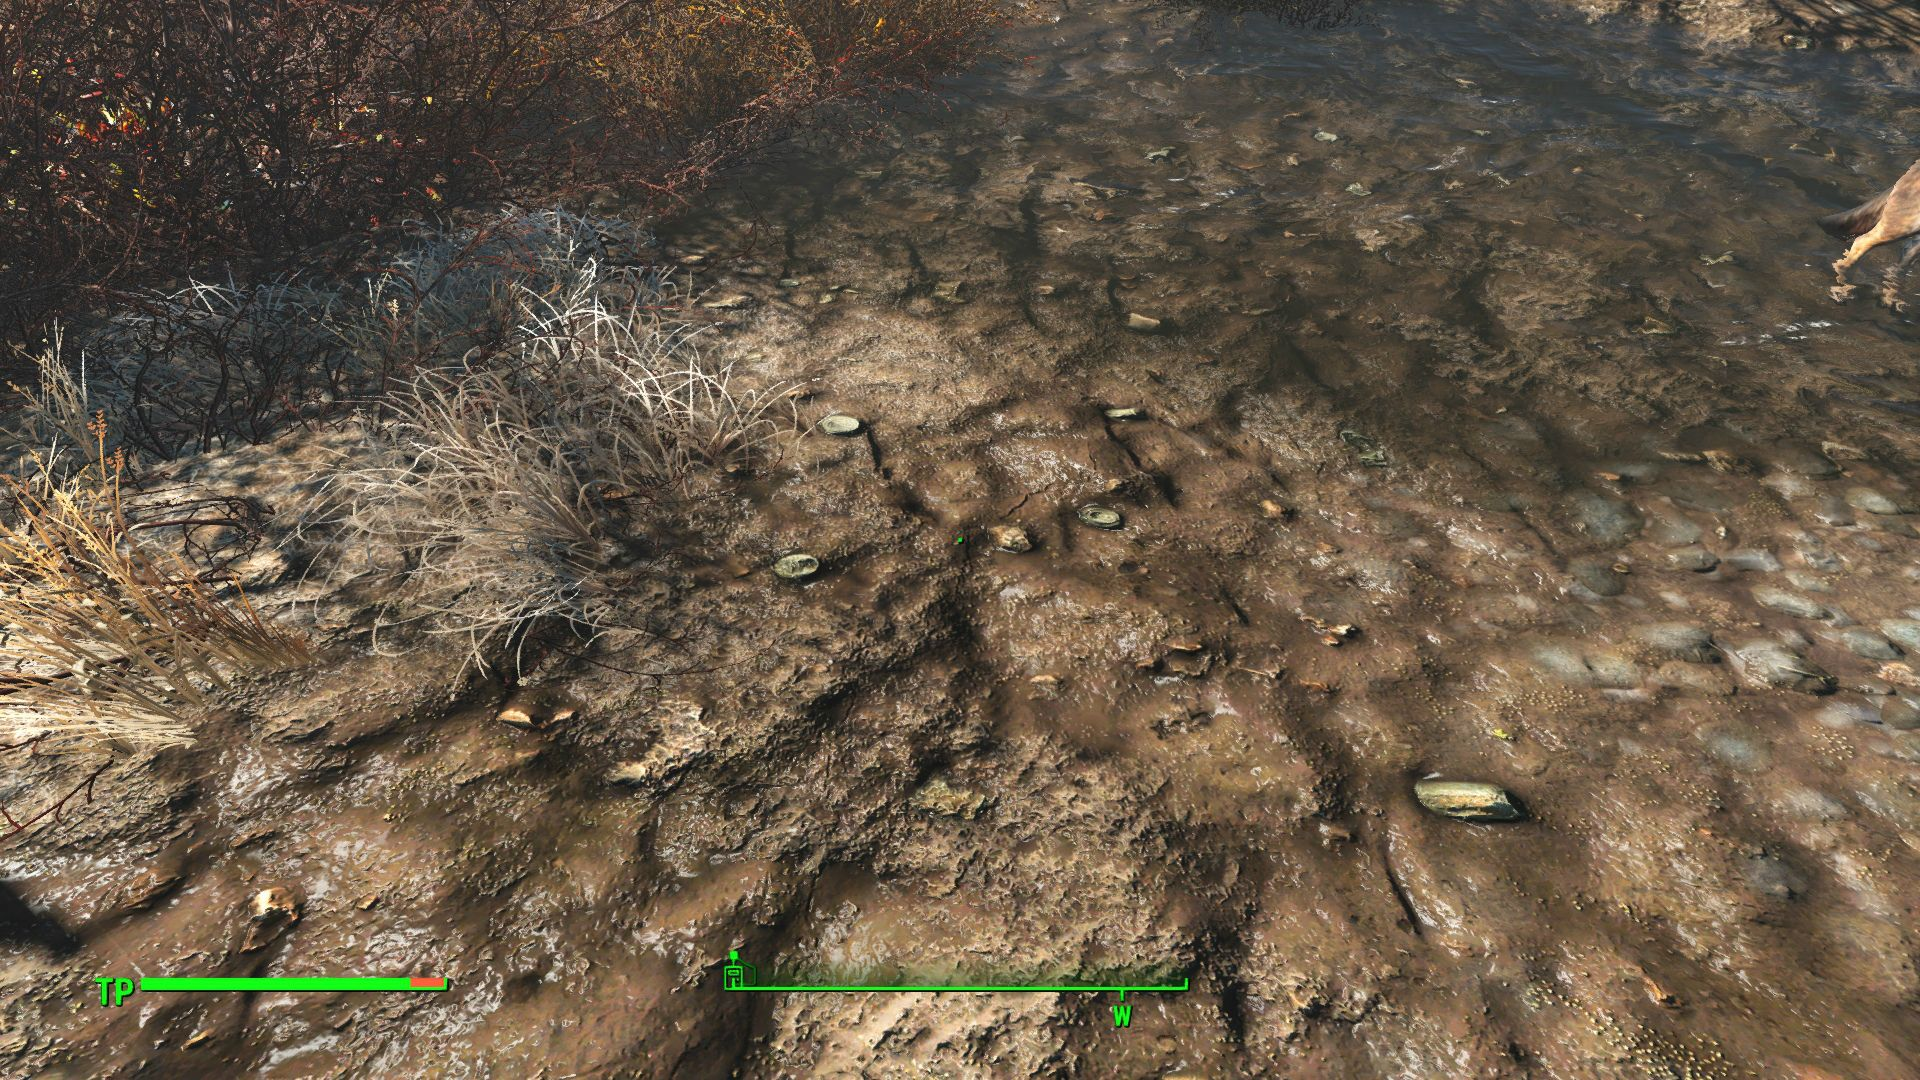 Fallout 4's First Texture Mod Improves Graphics and Optimizes VRAM Usage